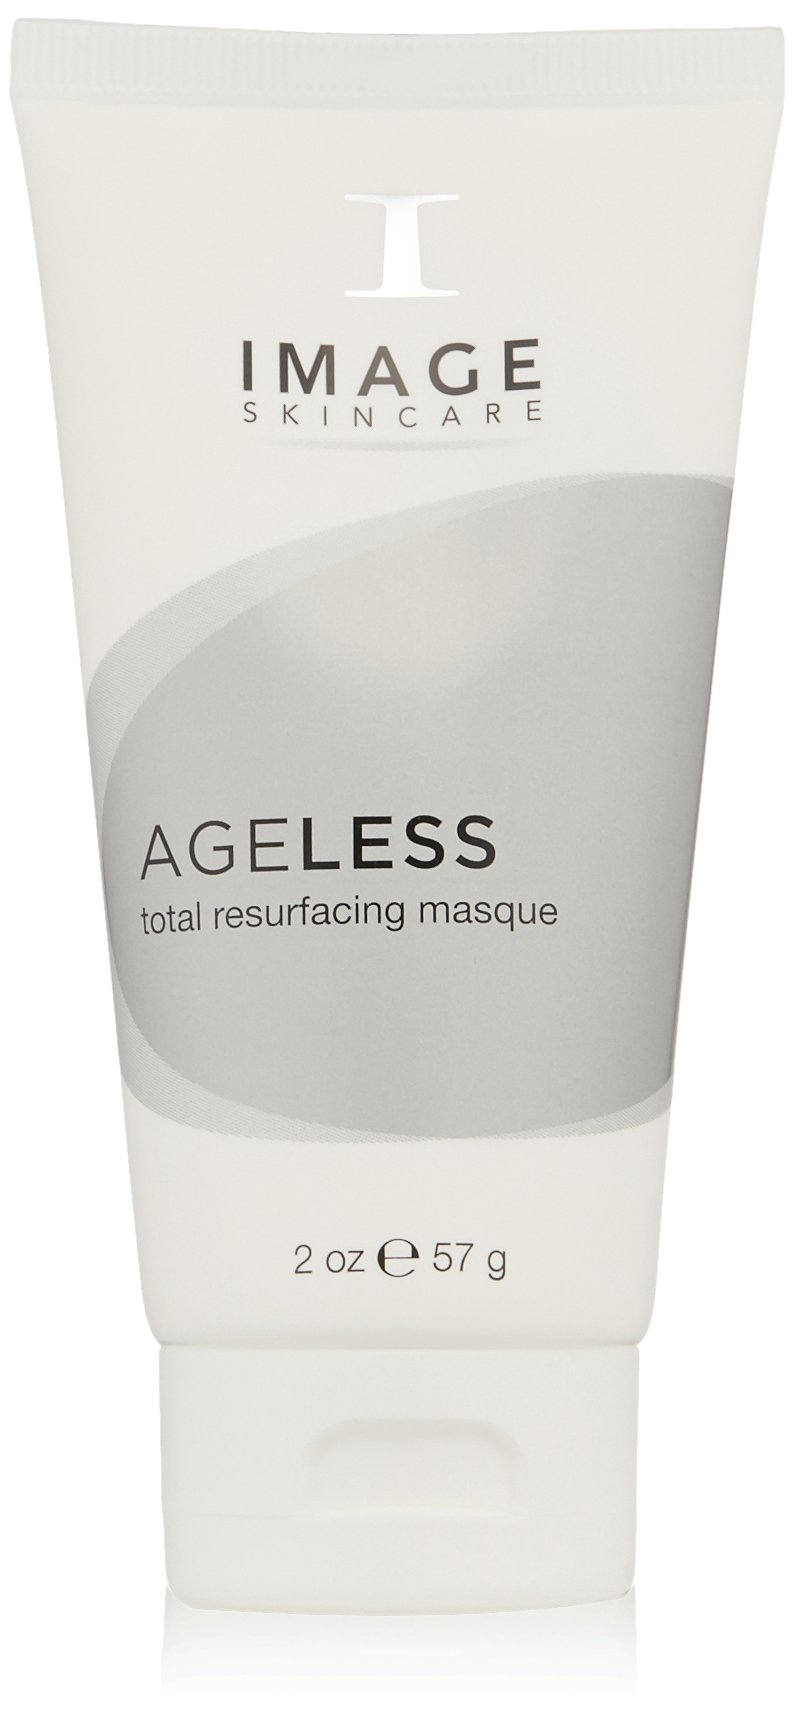 IMAGE Skincare Ageless Total Resurfacing Masque, 2 oz. by IMAGE Skincare